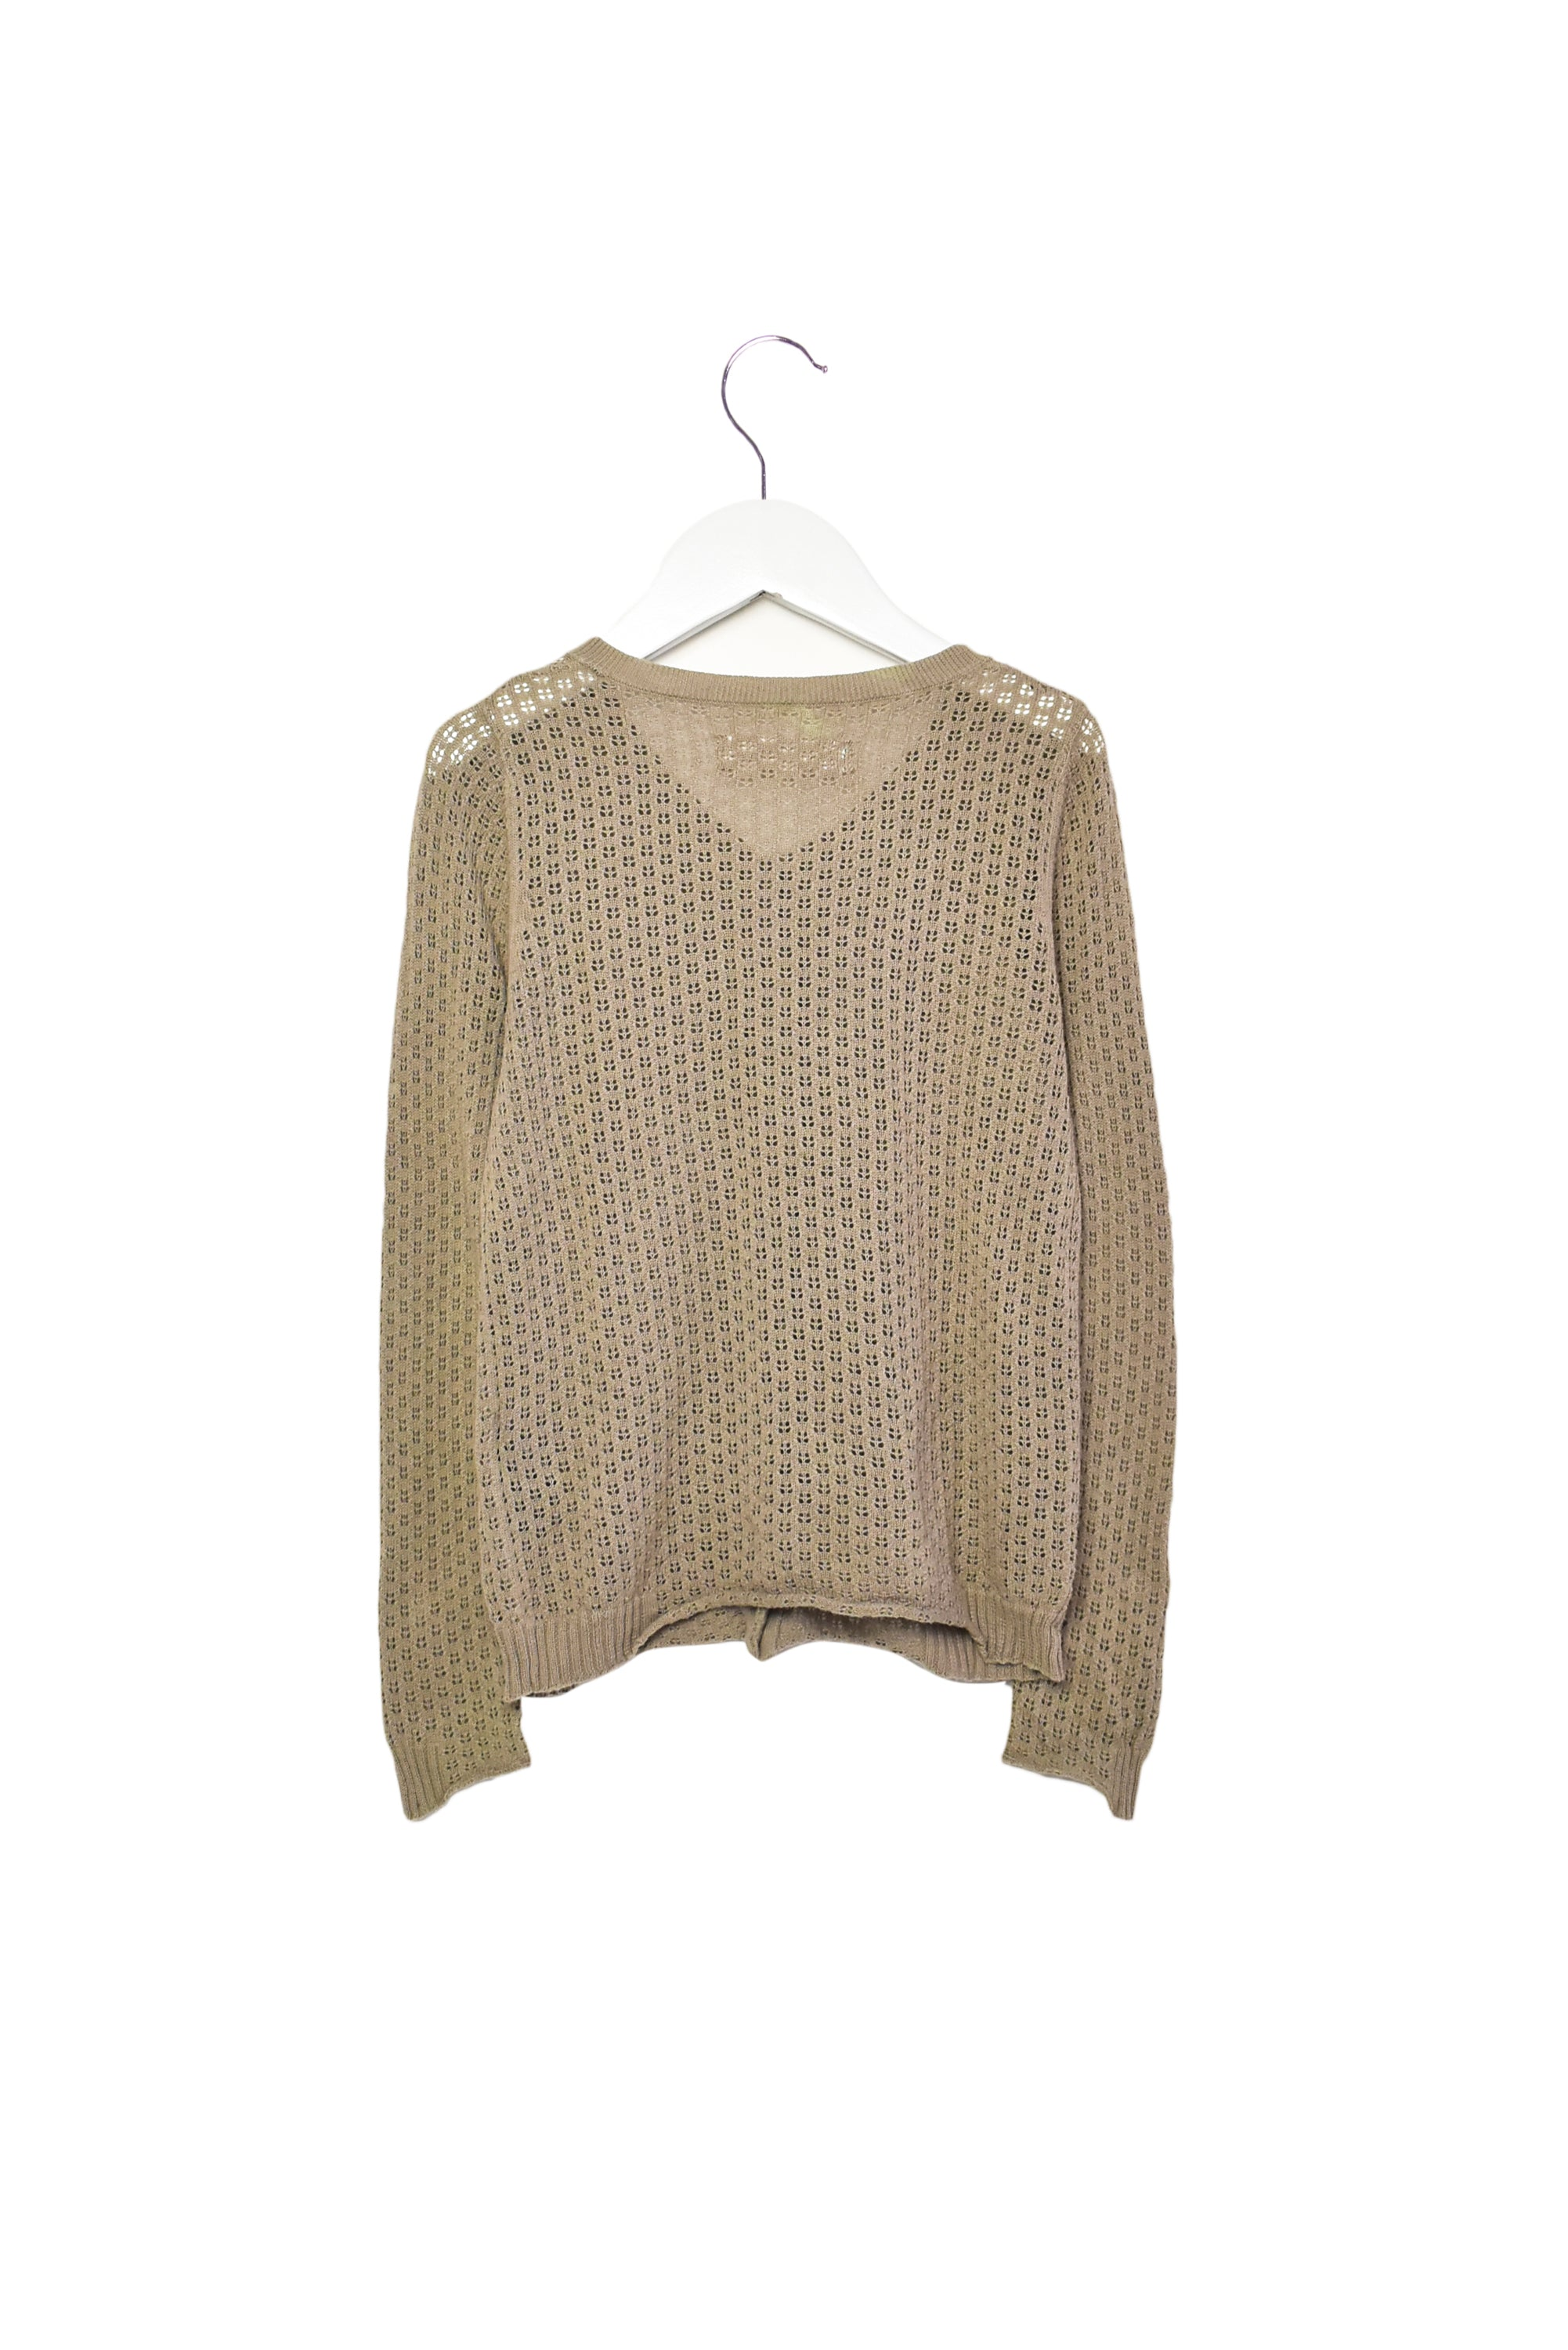 10012076 Zadig & Voltaire Kids~Cardigan 4-6T at Retykle